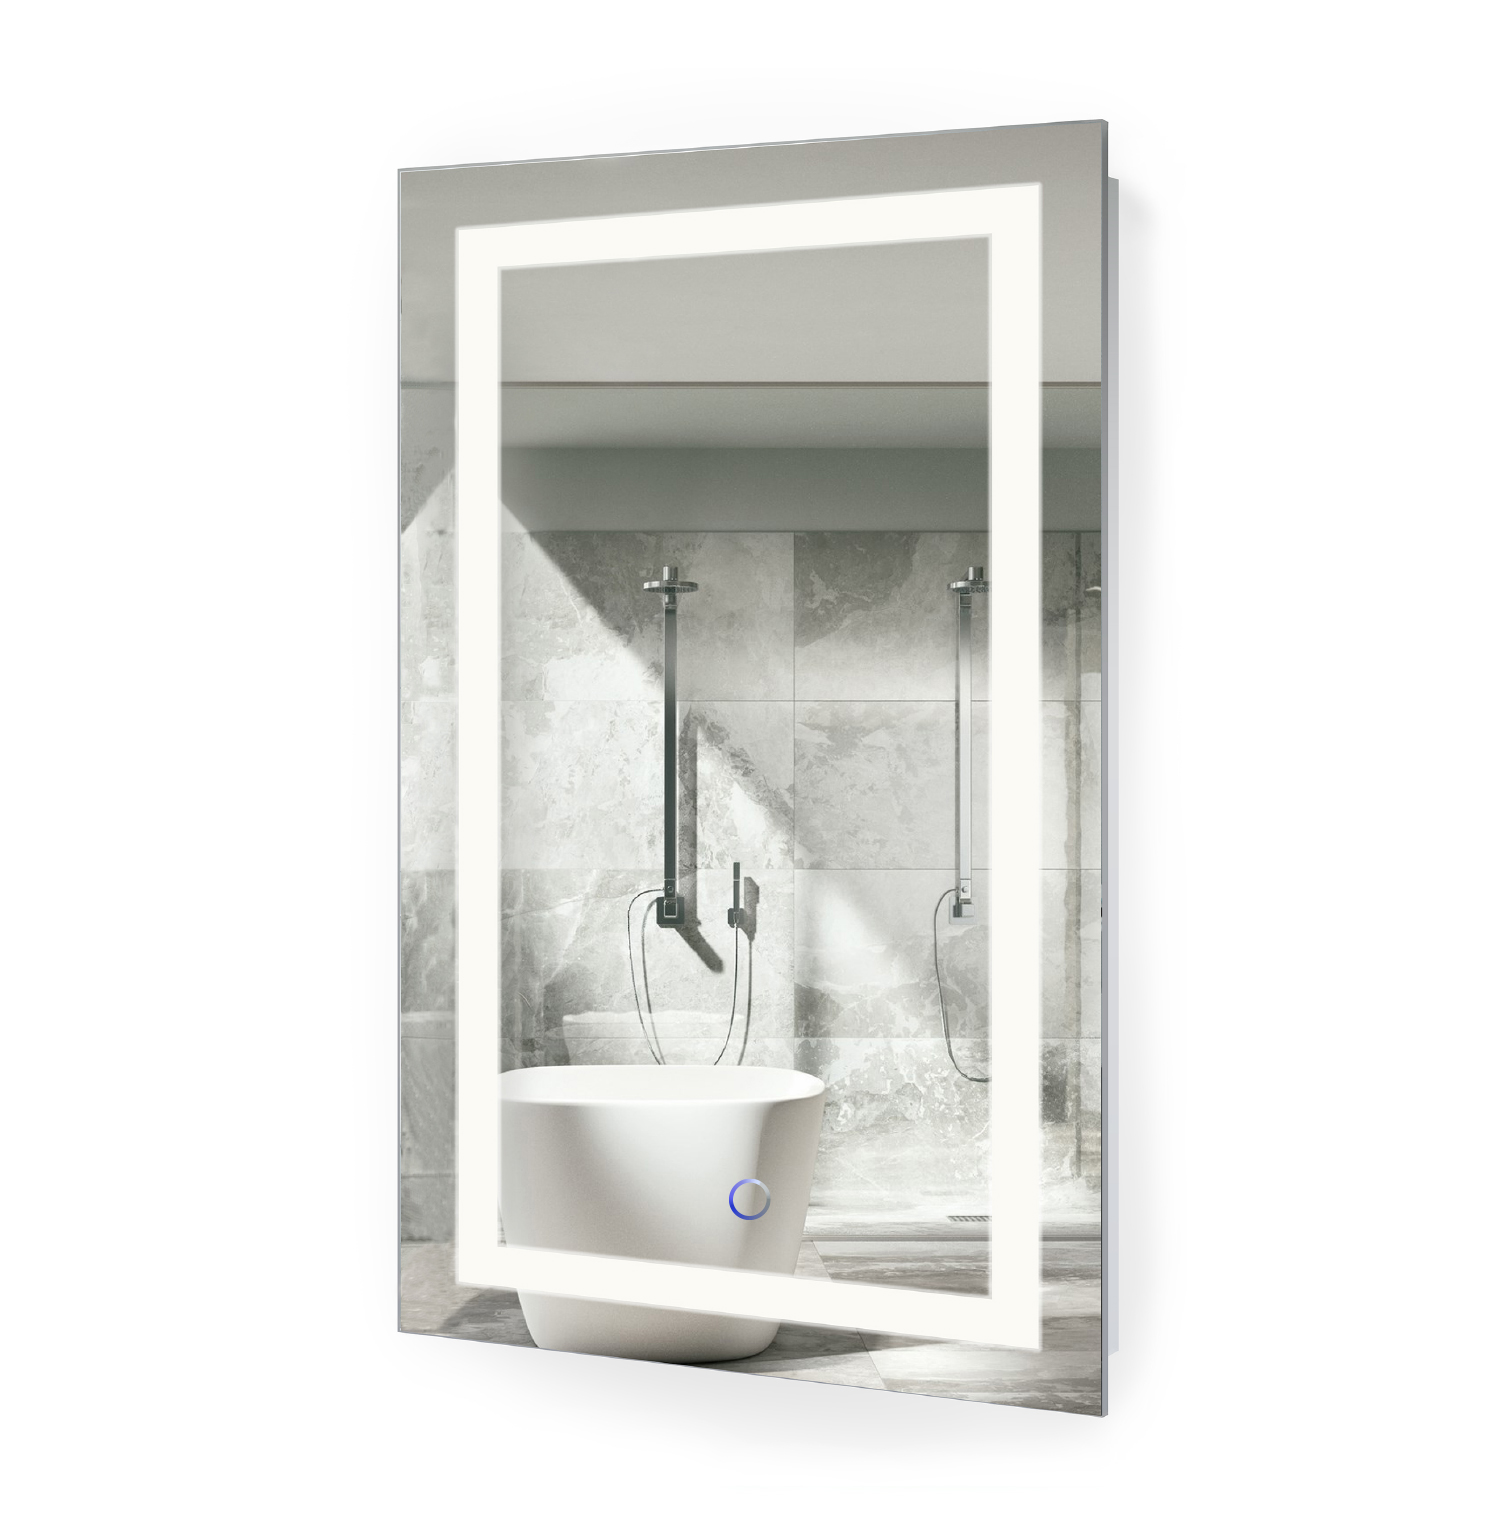 LED Vanity Mirror 20″x32″ Bathroom Lighted Mirror With Dimmer & Defogger Icon